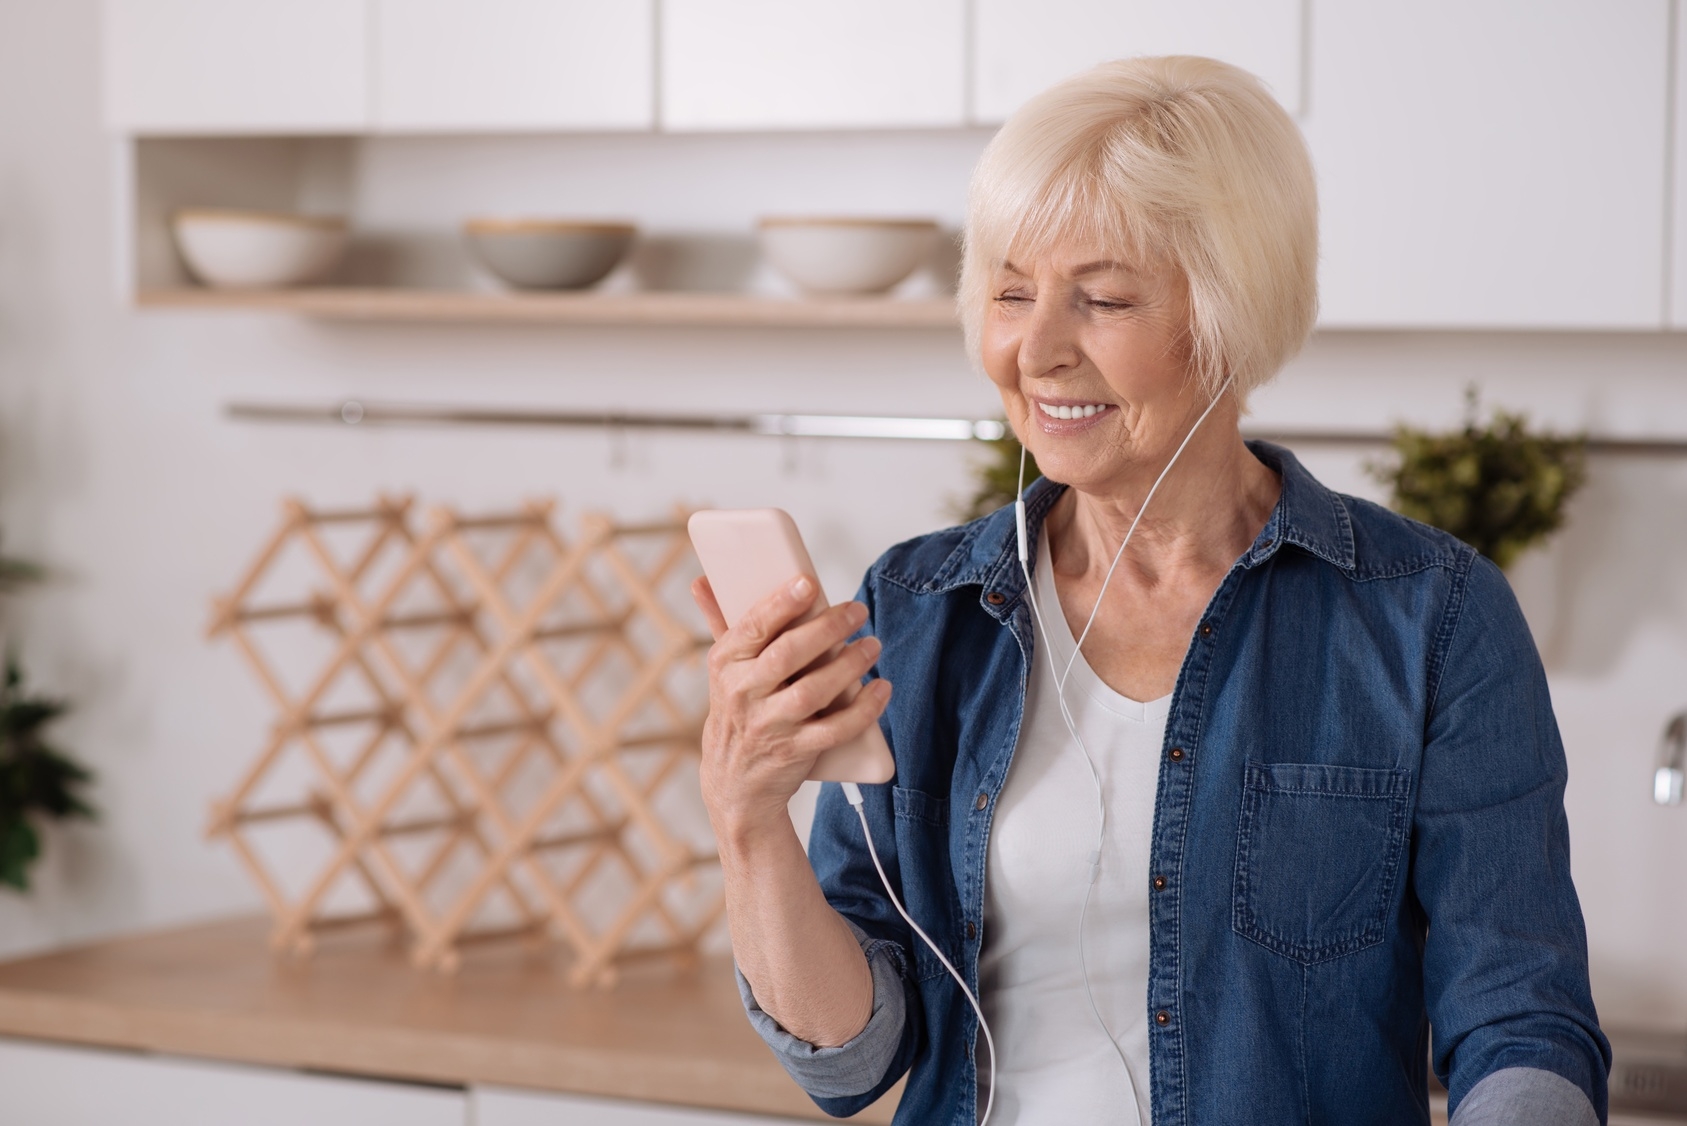 How Technology Is Important for Healthy Aging